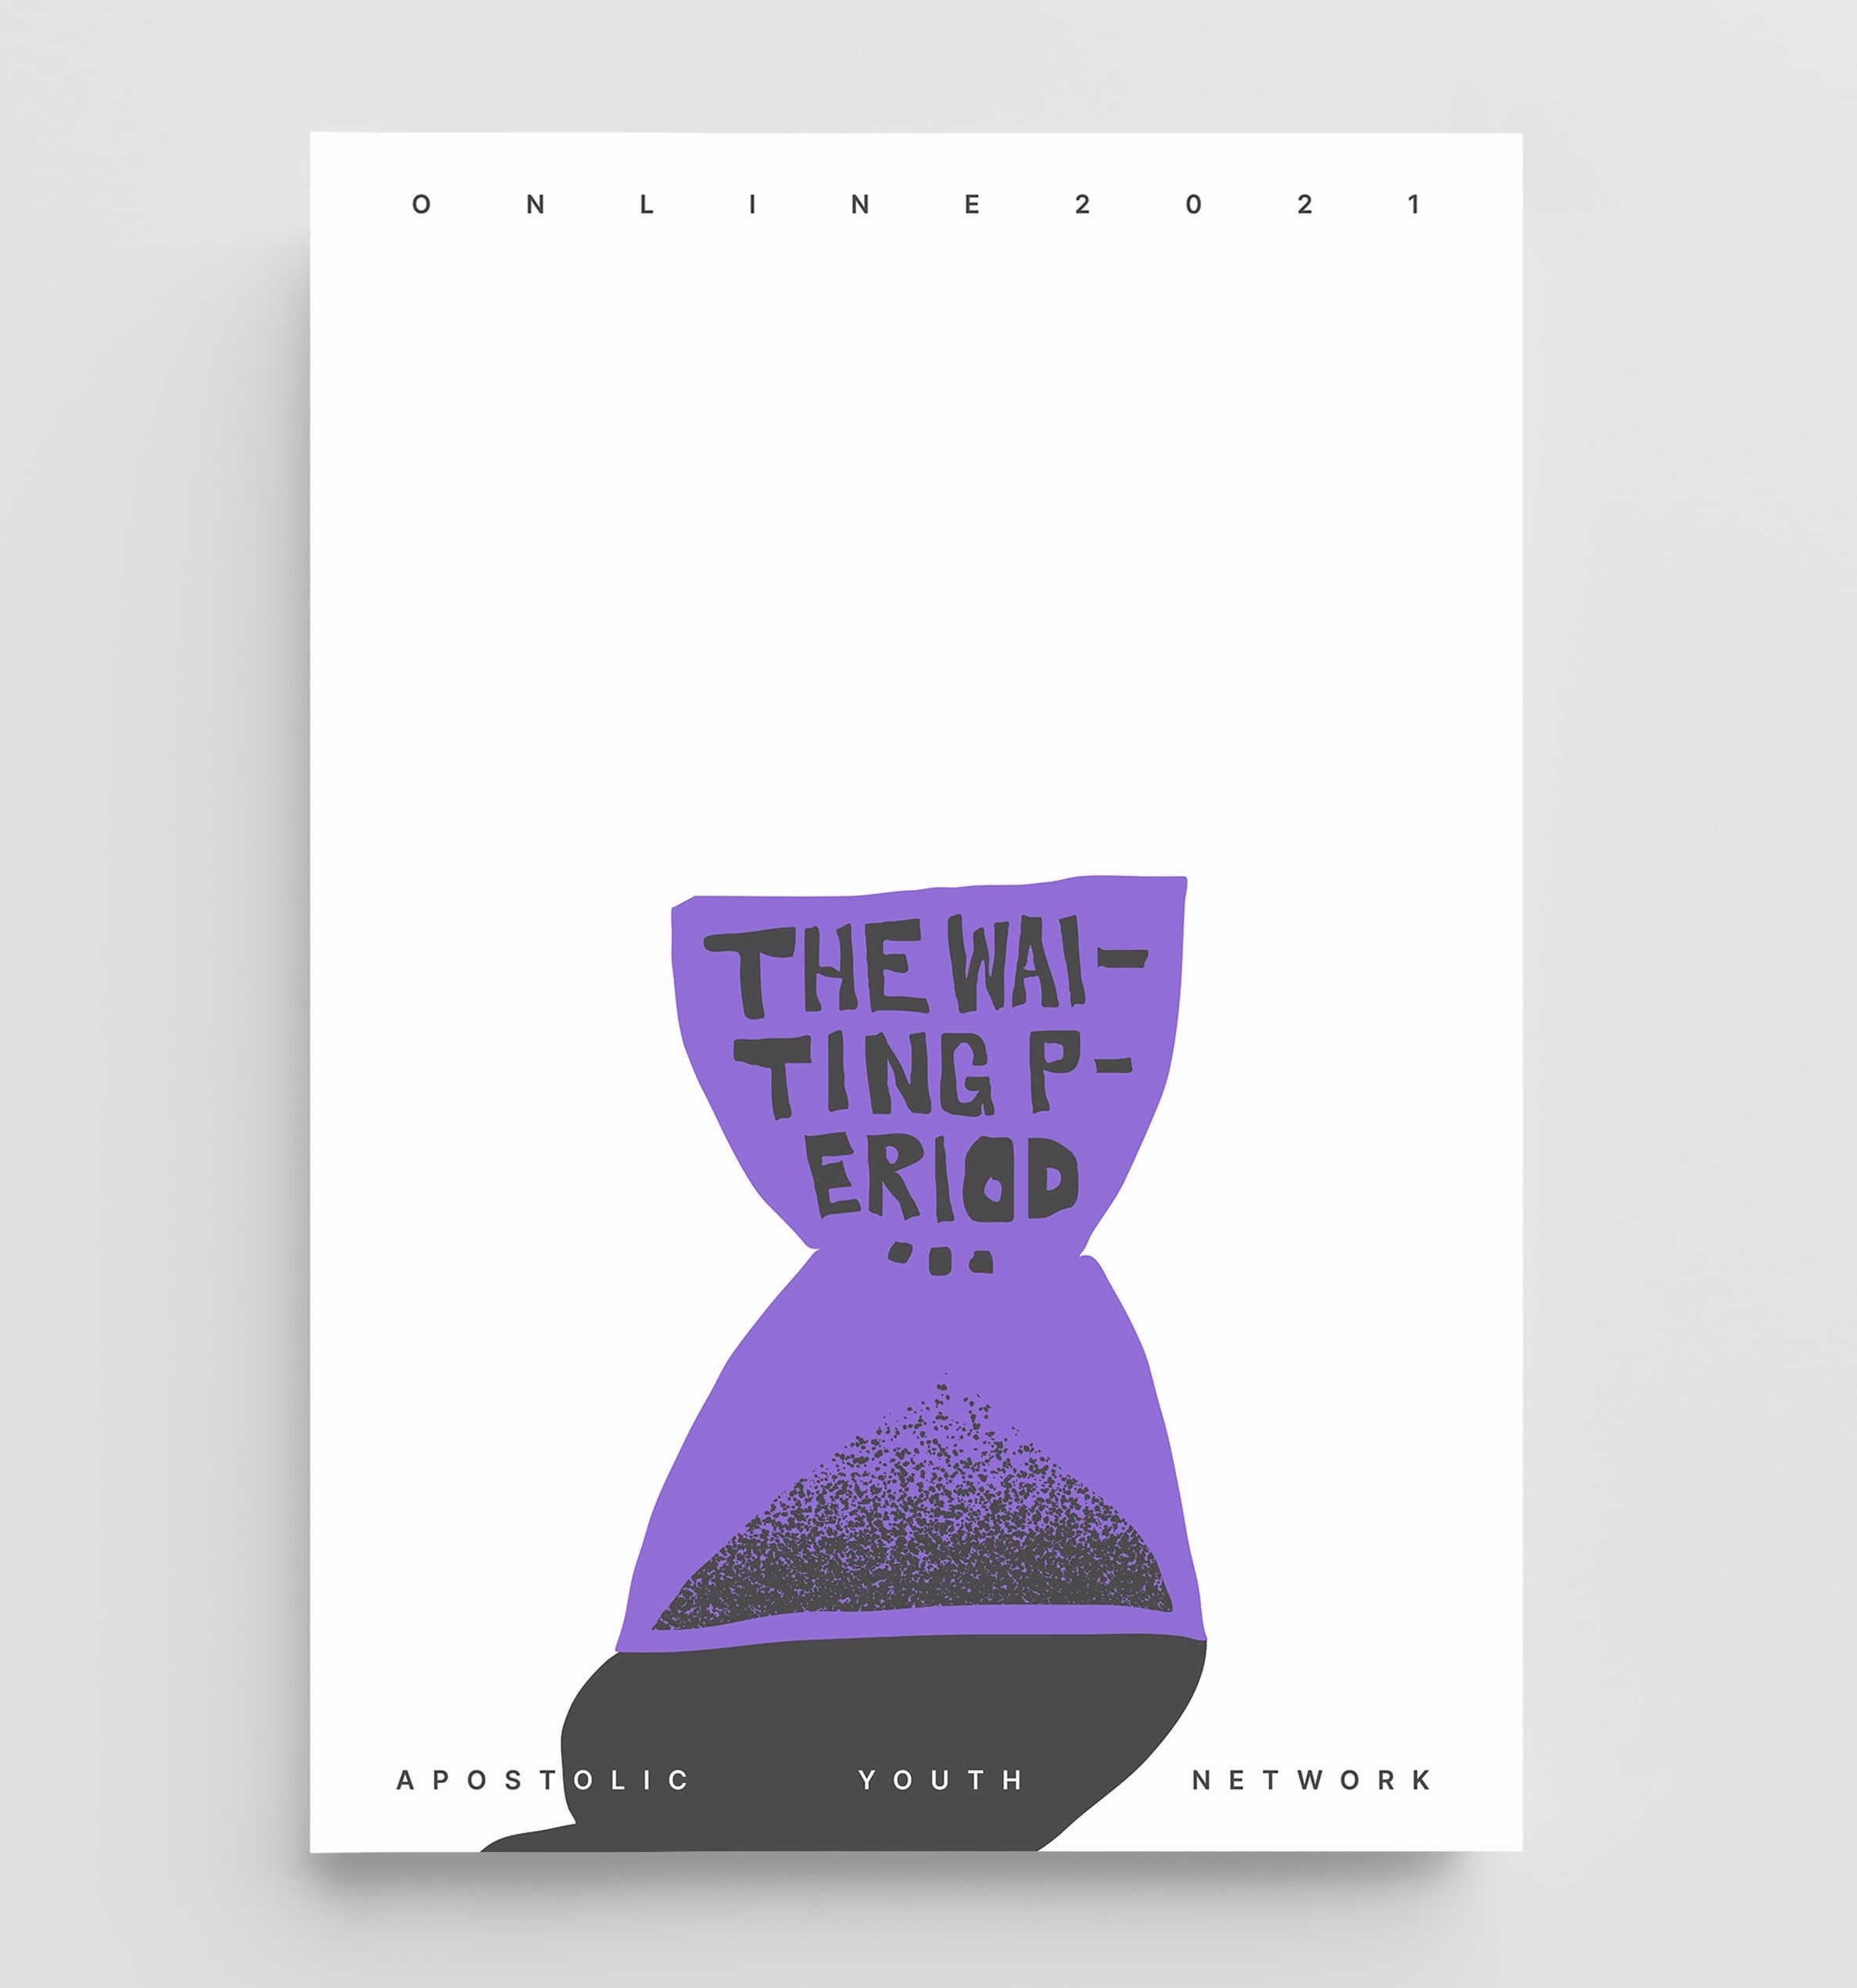 A poster depicting a purple abstract hourglass